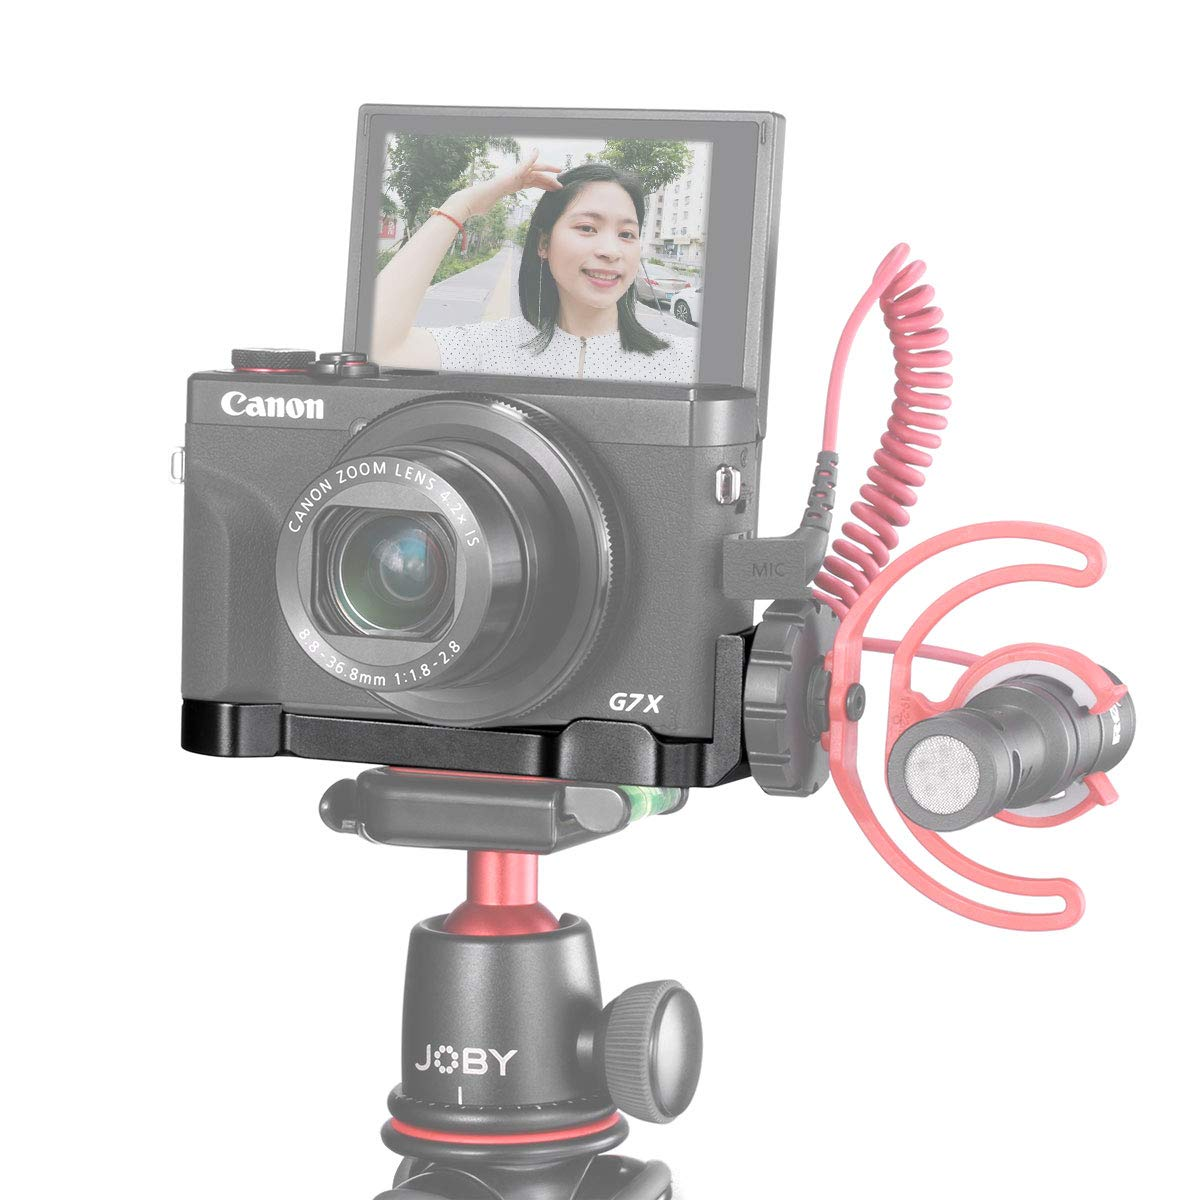 UURig R016 C-G7X Mark III Vlog Camera Cold Shoe Extension Microphone Side Mount for Canon G7X Mark III Camera, 1/4'' Tripod Mount, Vlogging Accessories by UURig